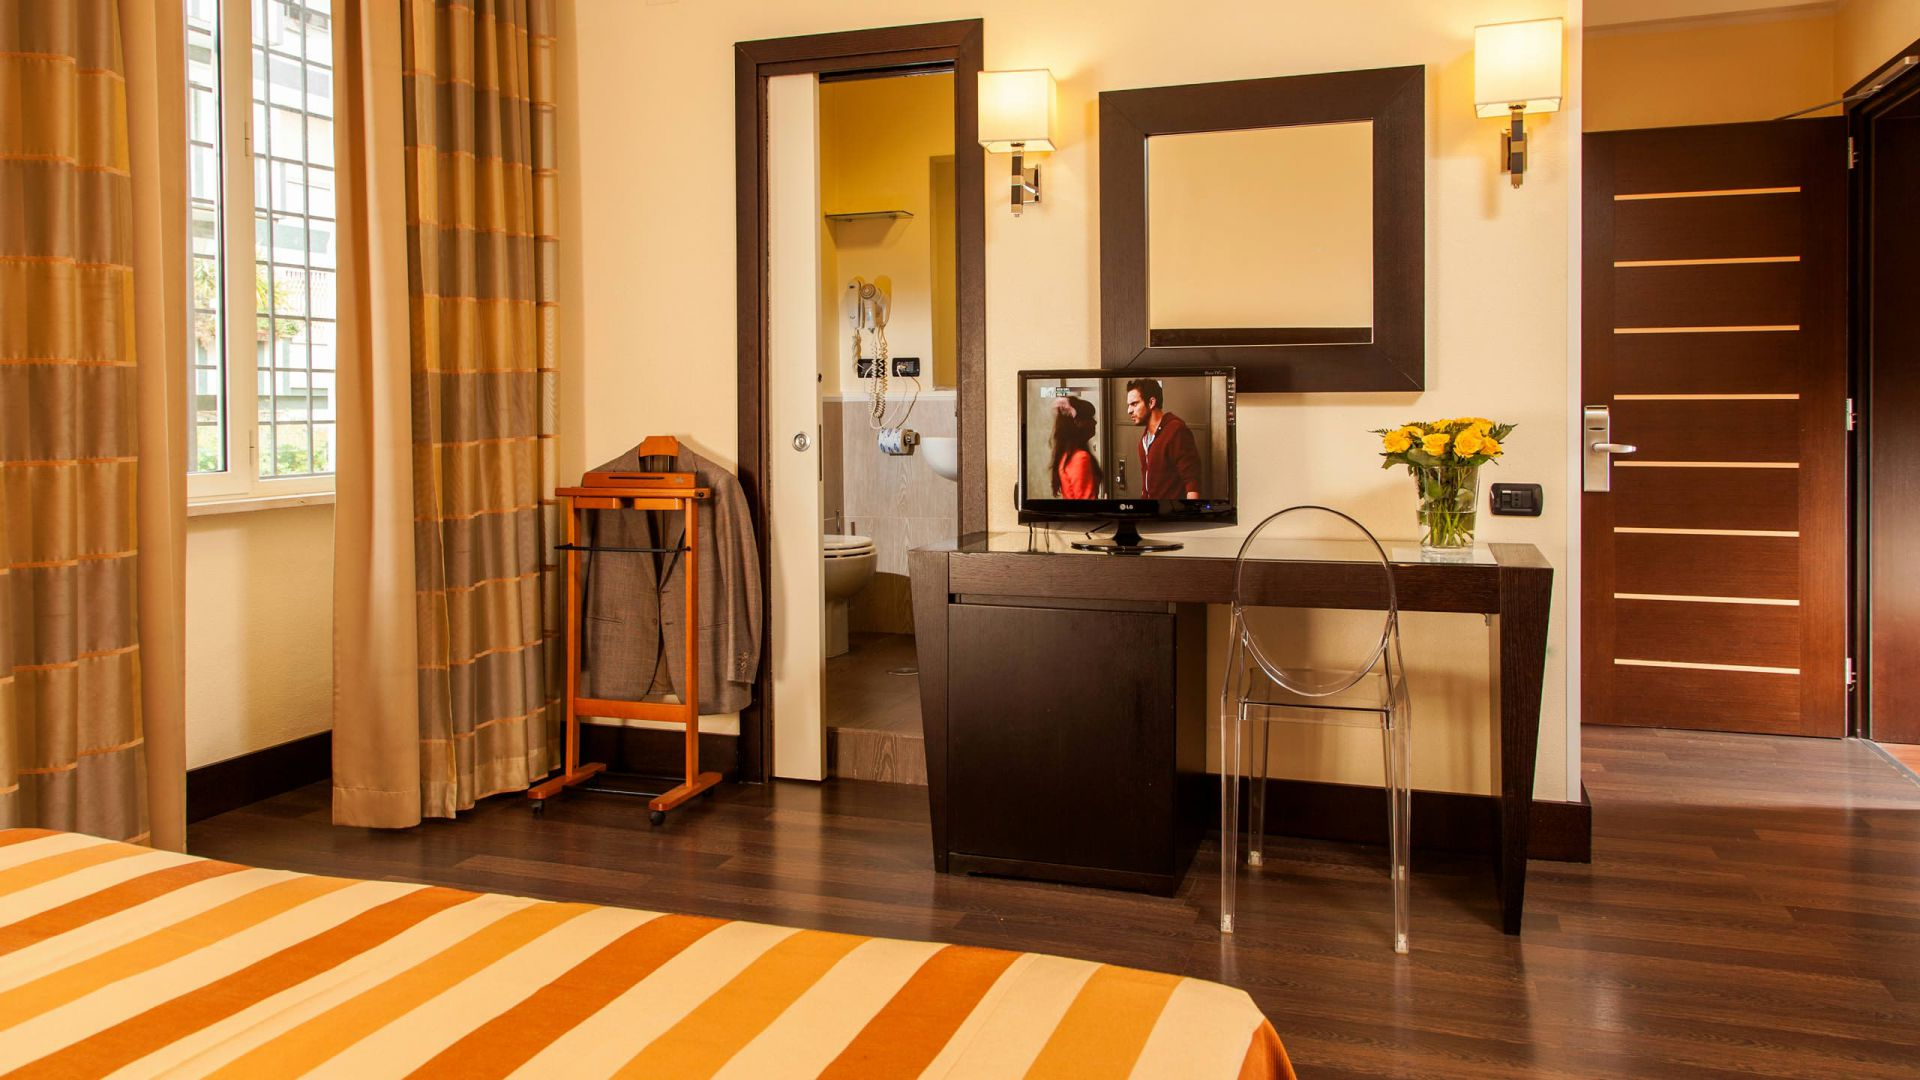 hotel-buenos-aires-rome-gallery-6